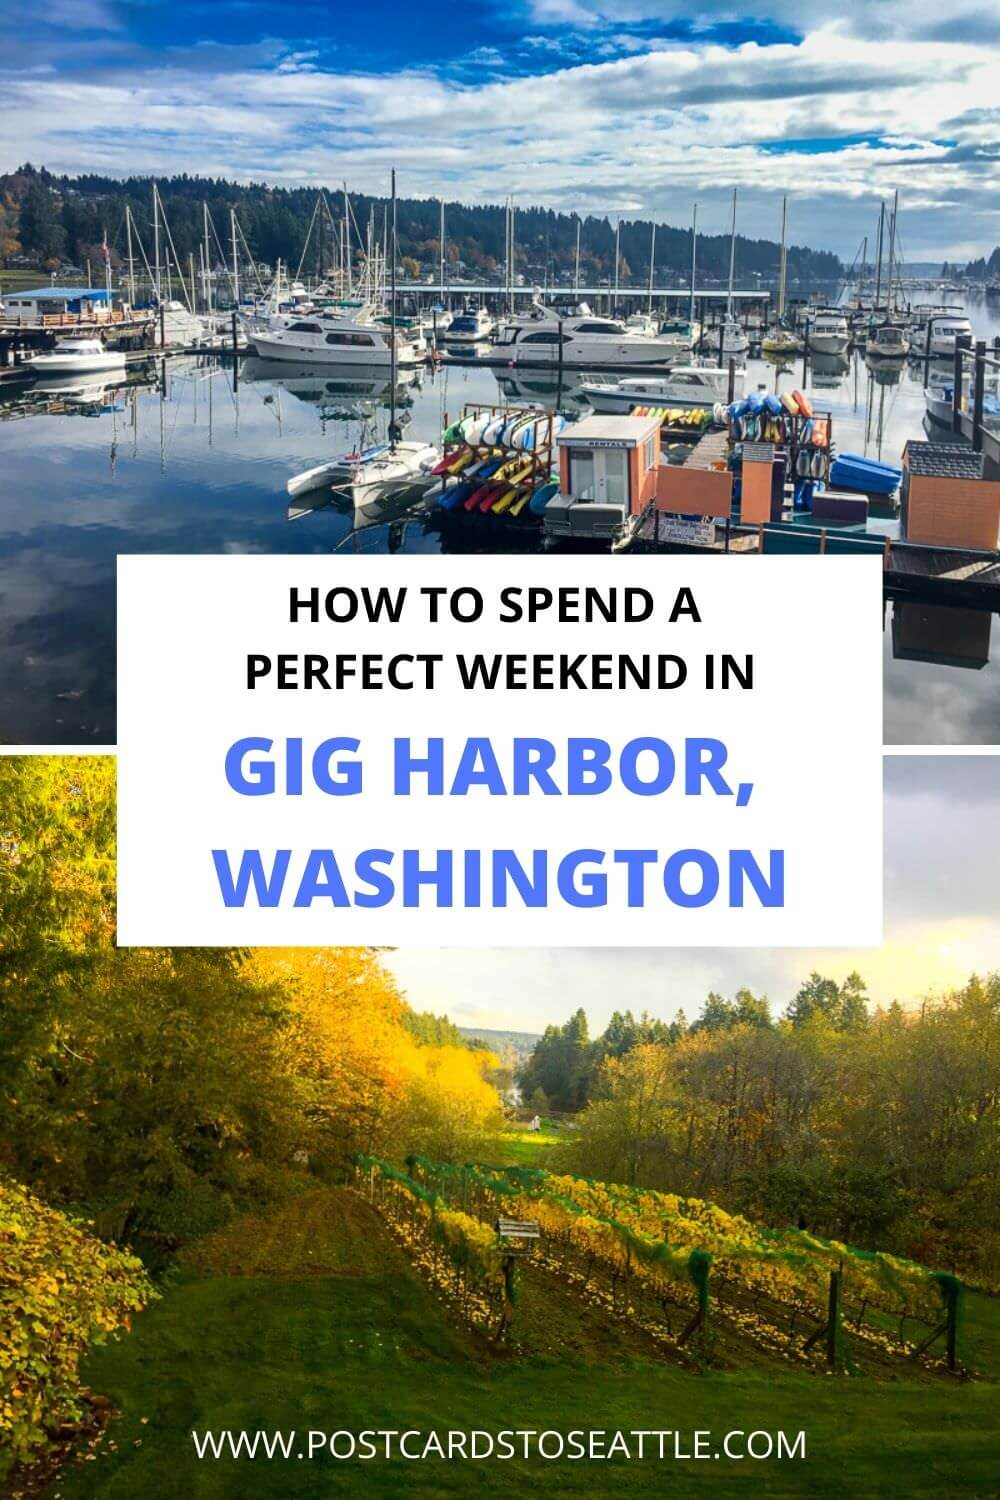 How to Plan a Weekend in Gig Harbor